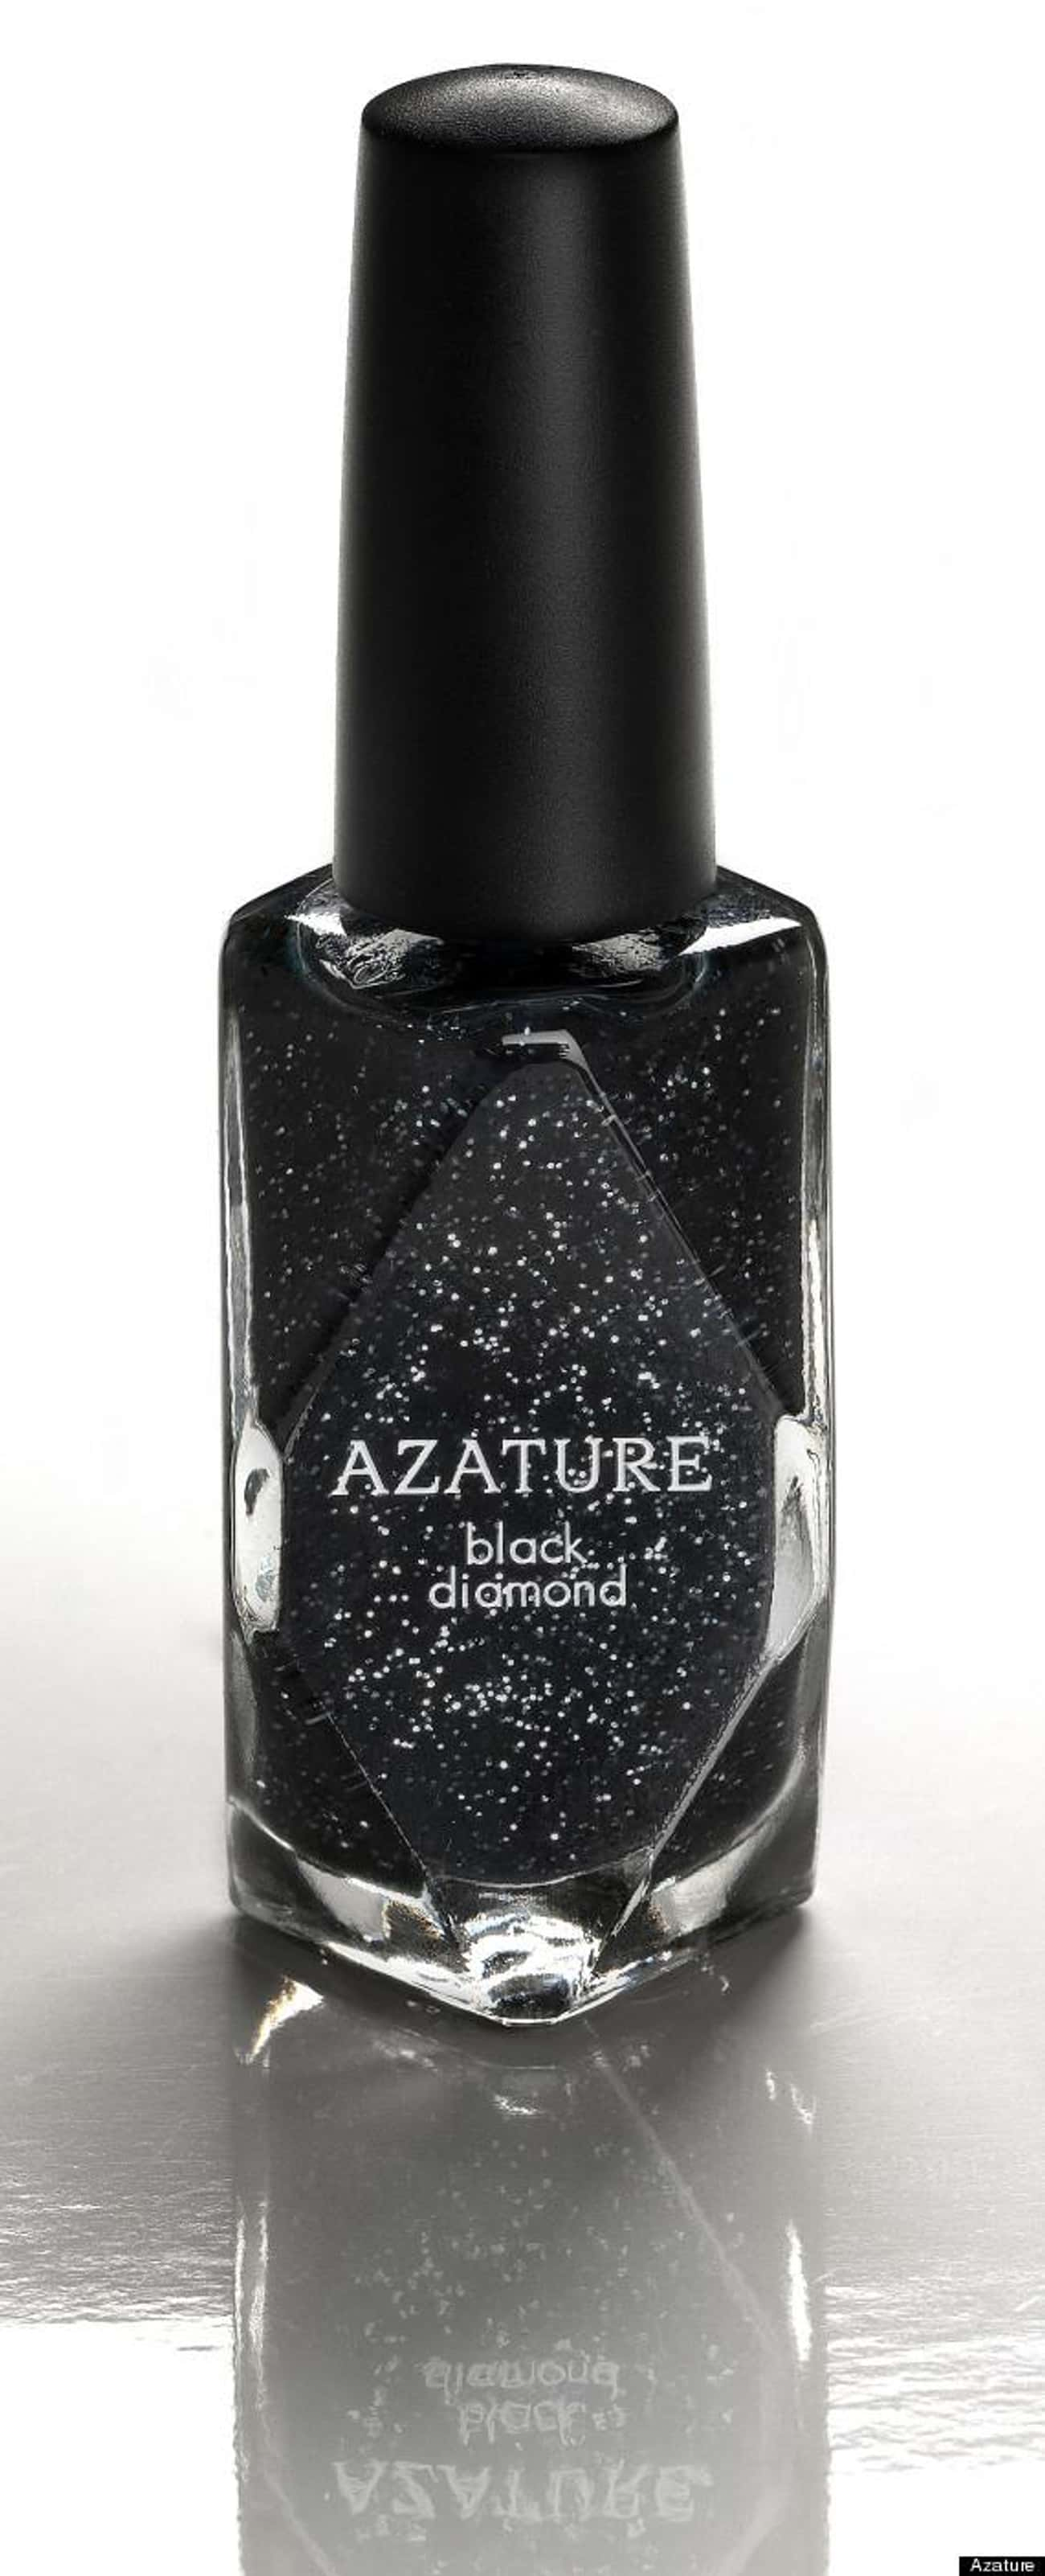 Azature Black Diamond Nail Pol is listed (or ranked) 3 on the list Crazy Beauty Products You Definitely Don't Need